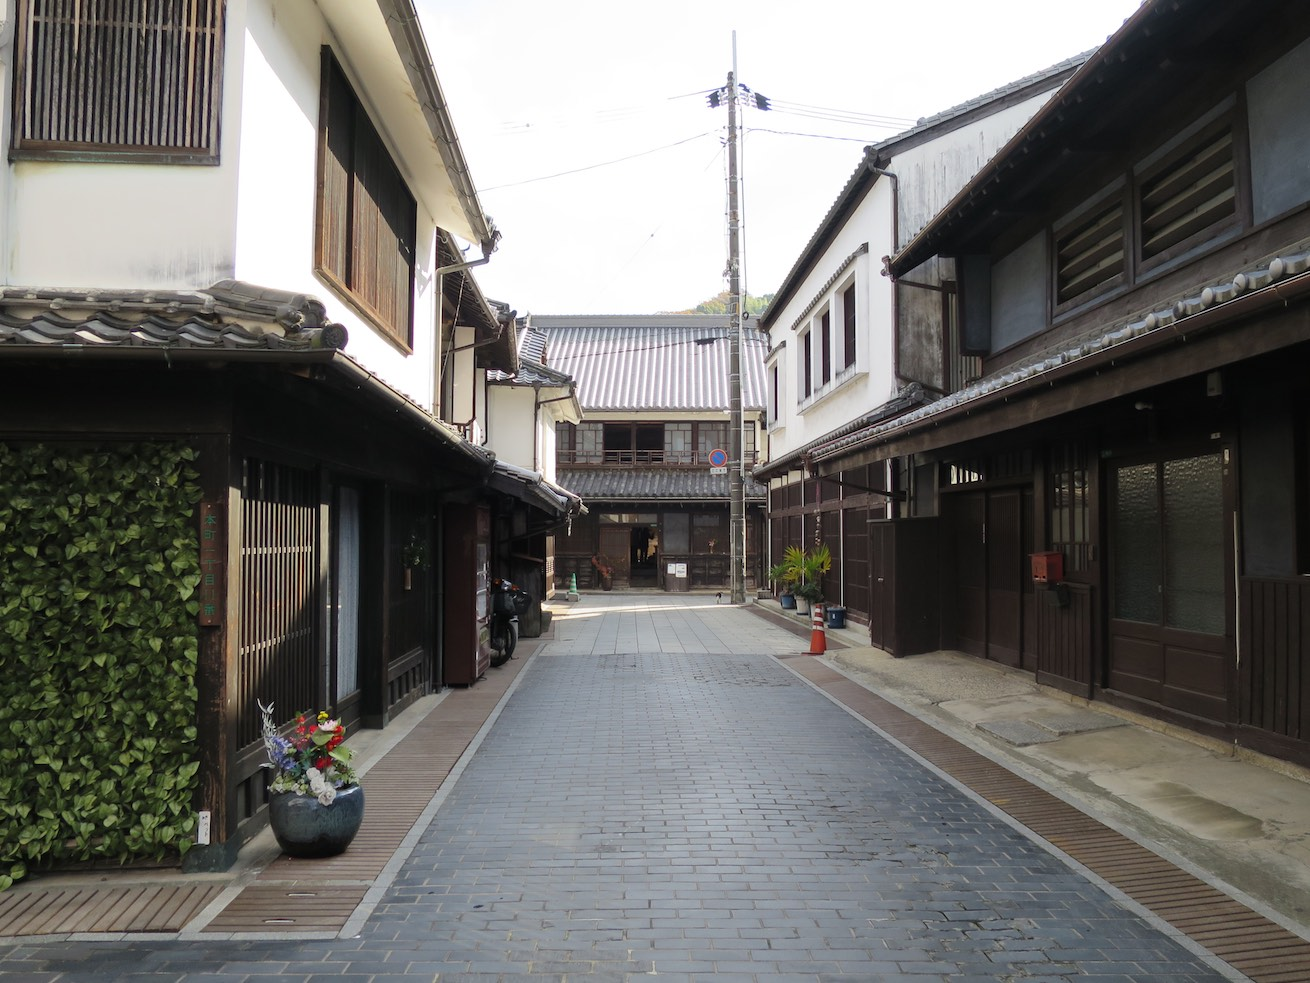 Takehara City